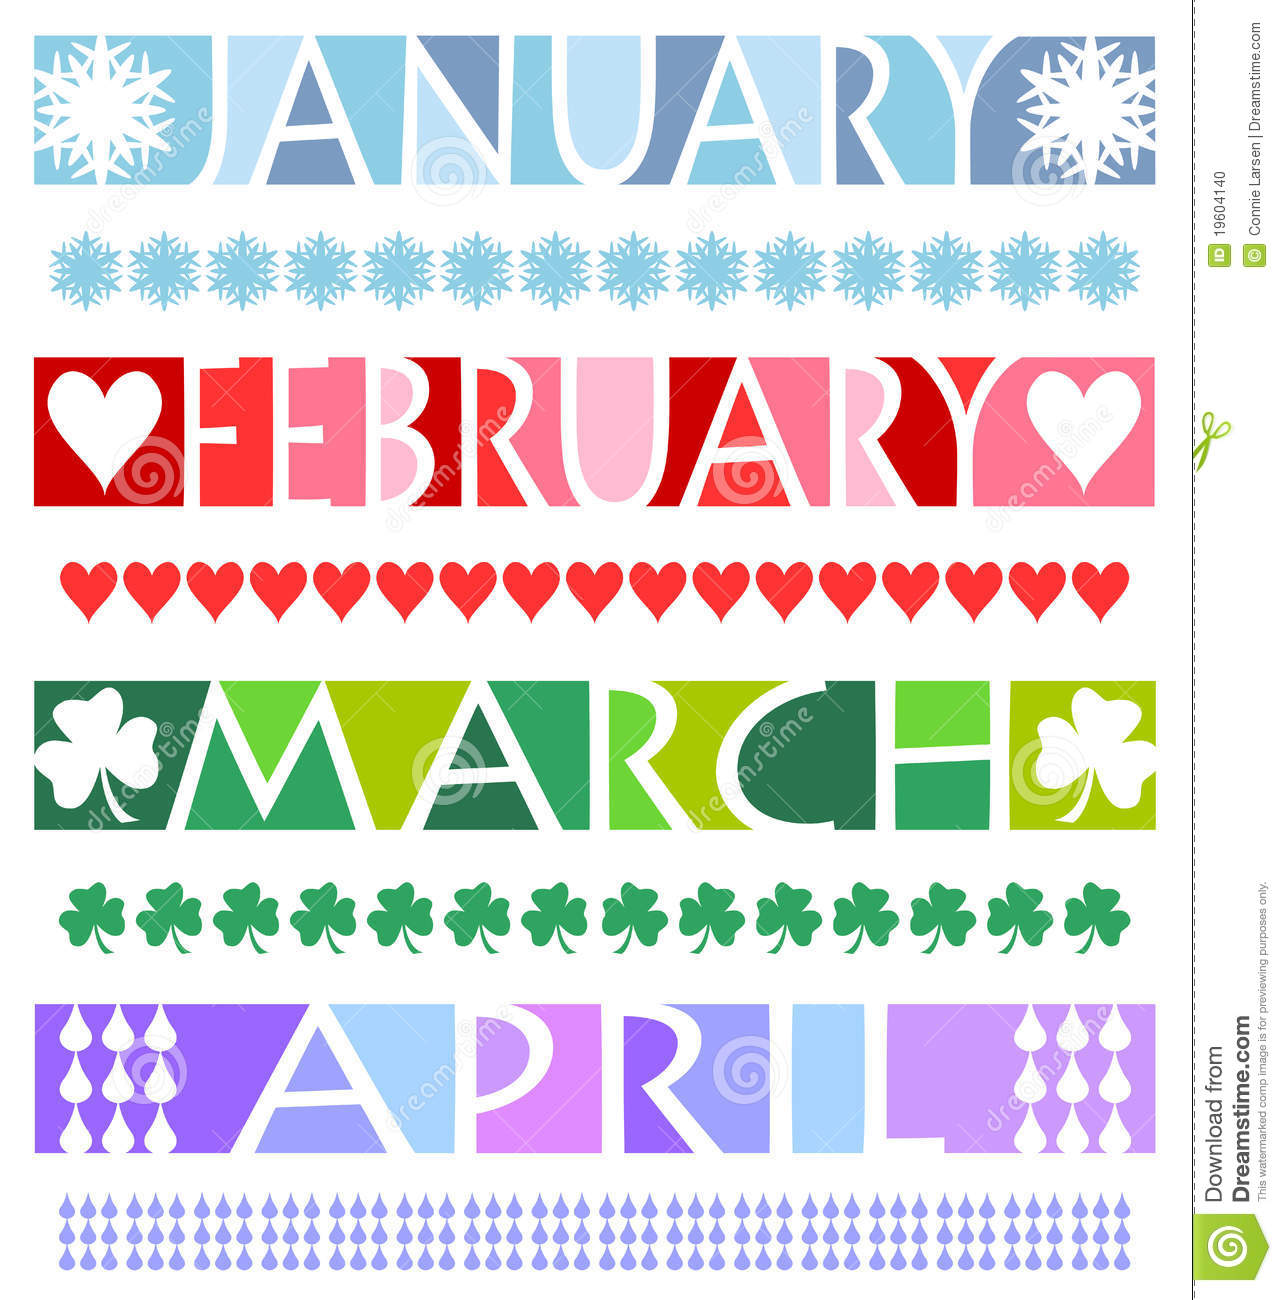 ... matching borders for the months January, February, March and April